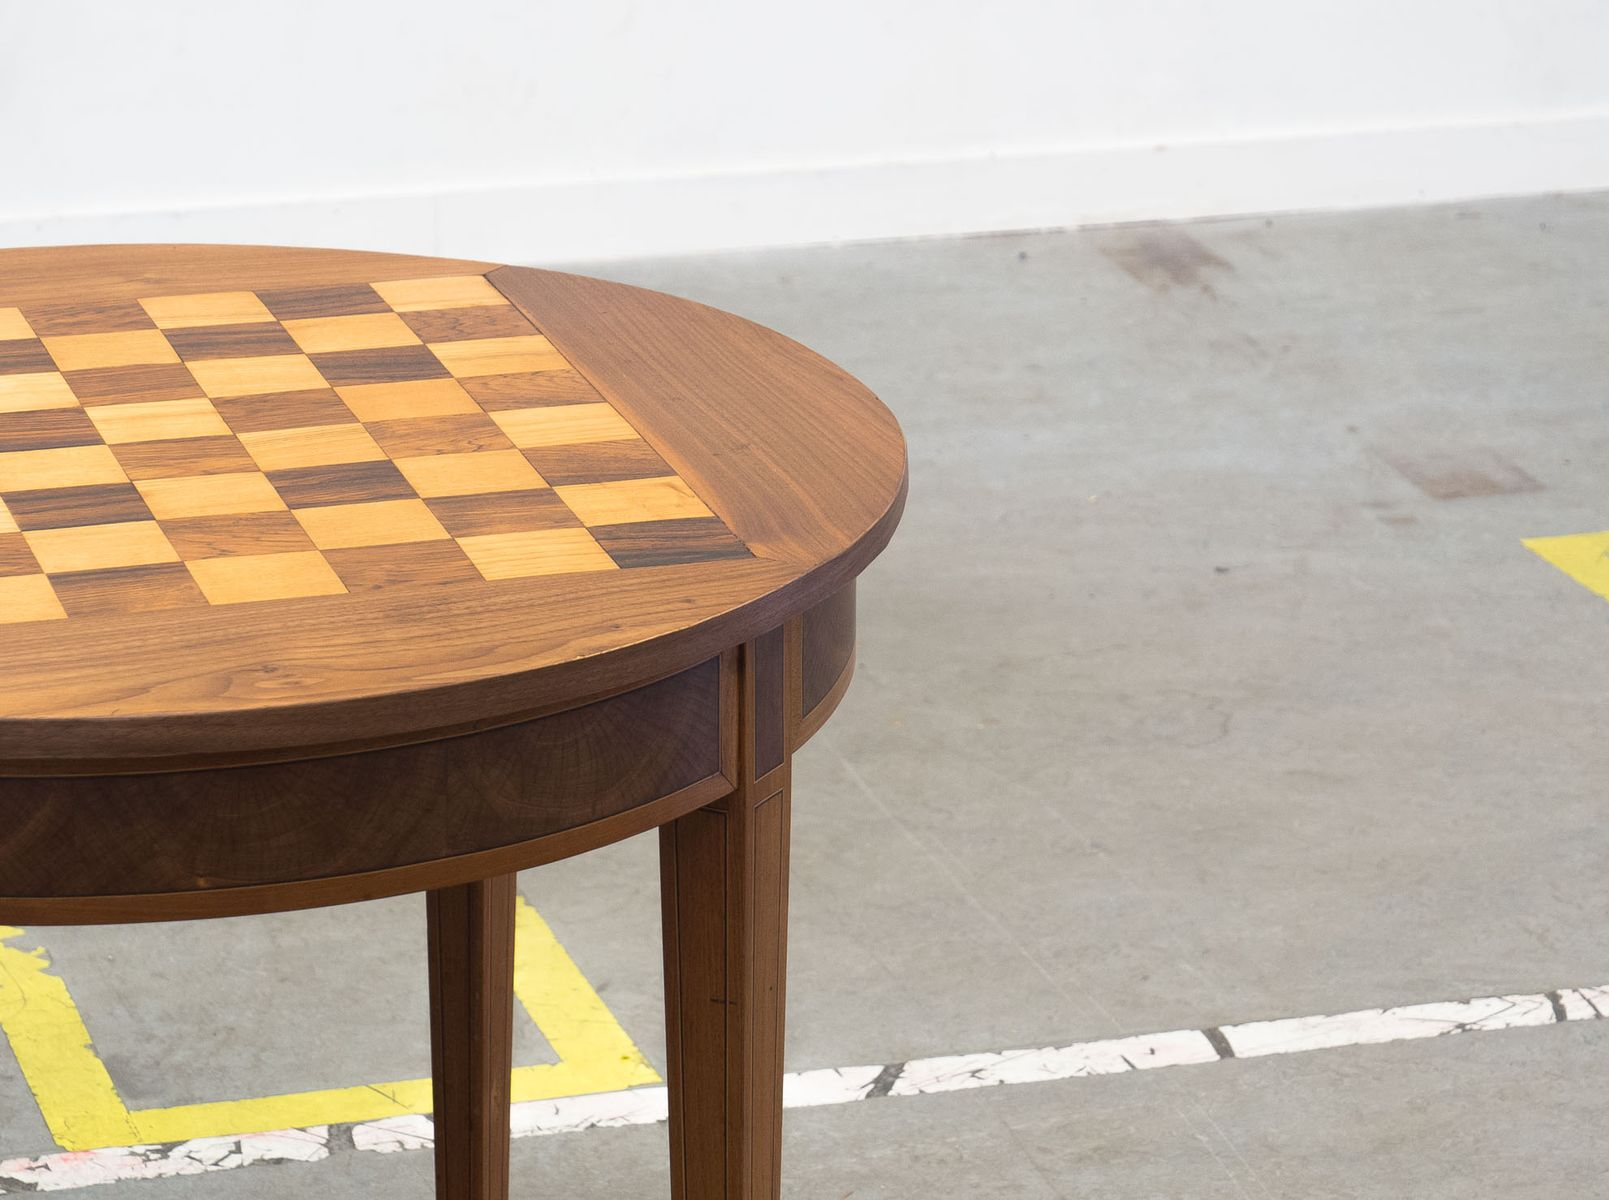 Vintage chess board table 8 intellectual outdoor chess table 14 chess table design geotapseo Image collections